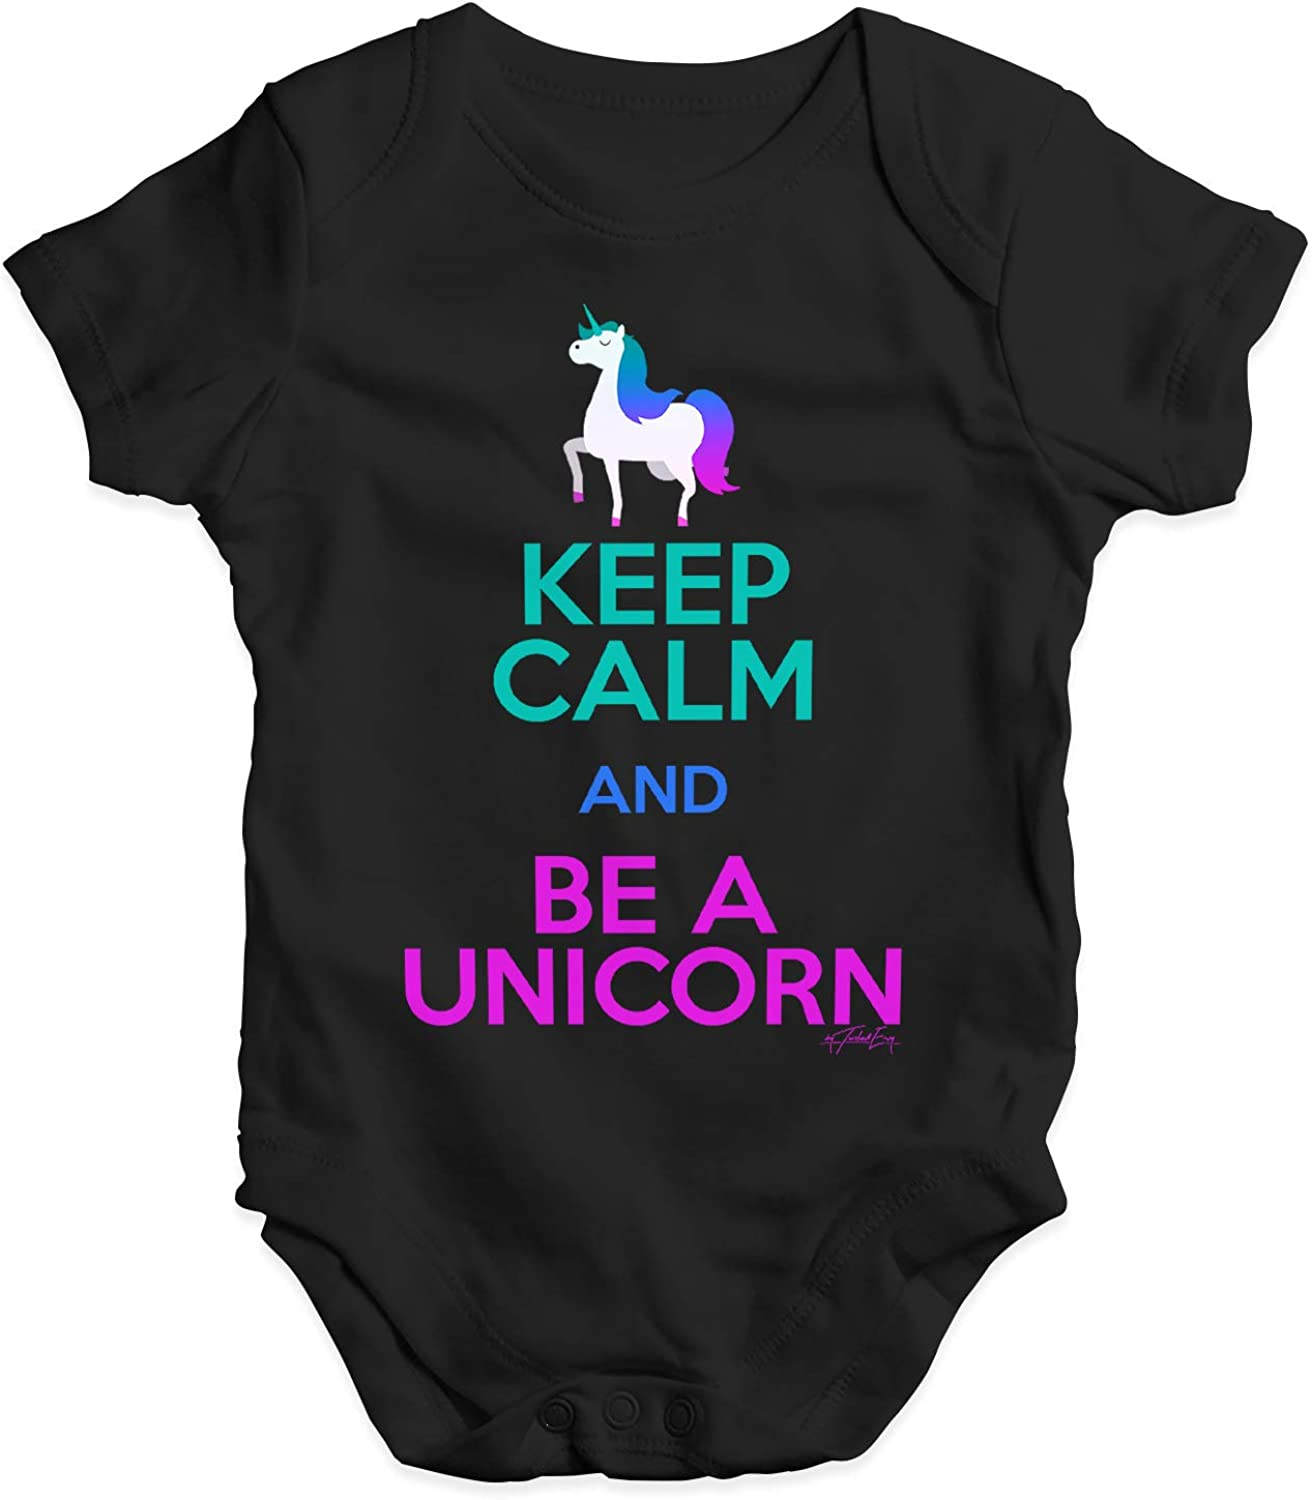 TWISTED ENVY Unicorns are Cool Baby Funny Leggings Trousers